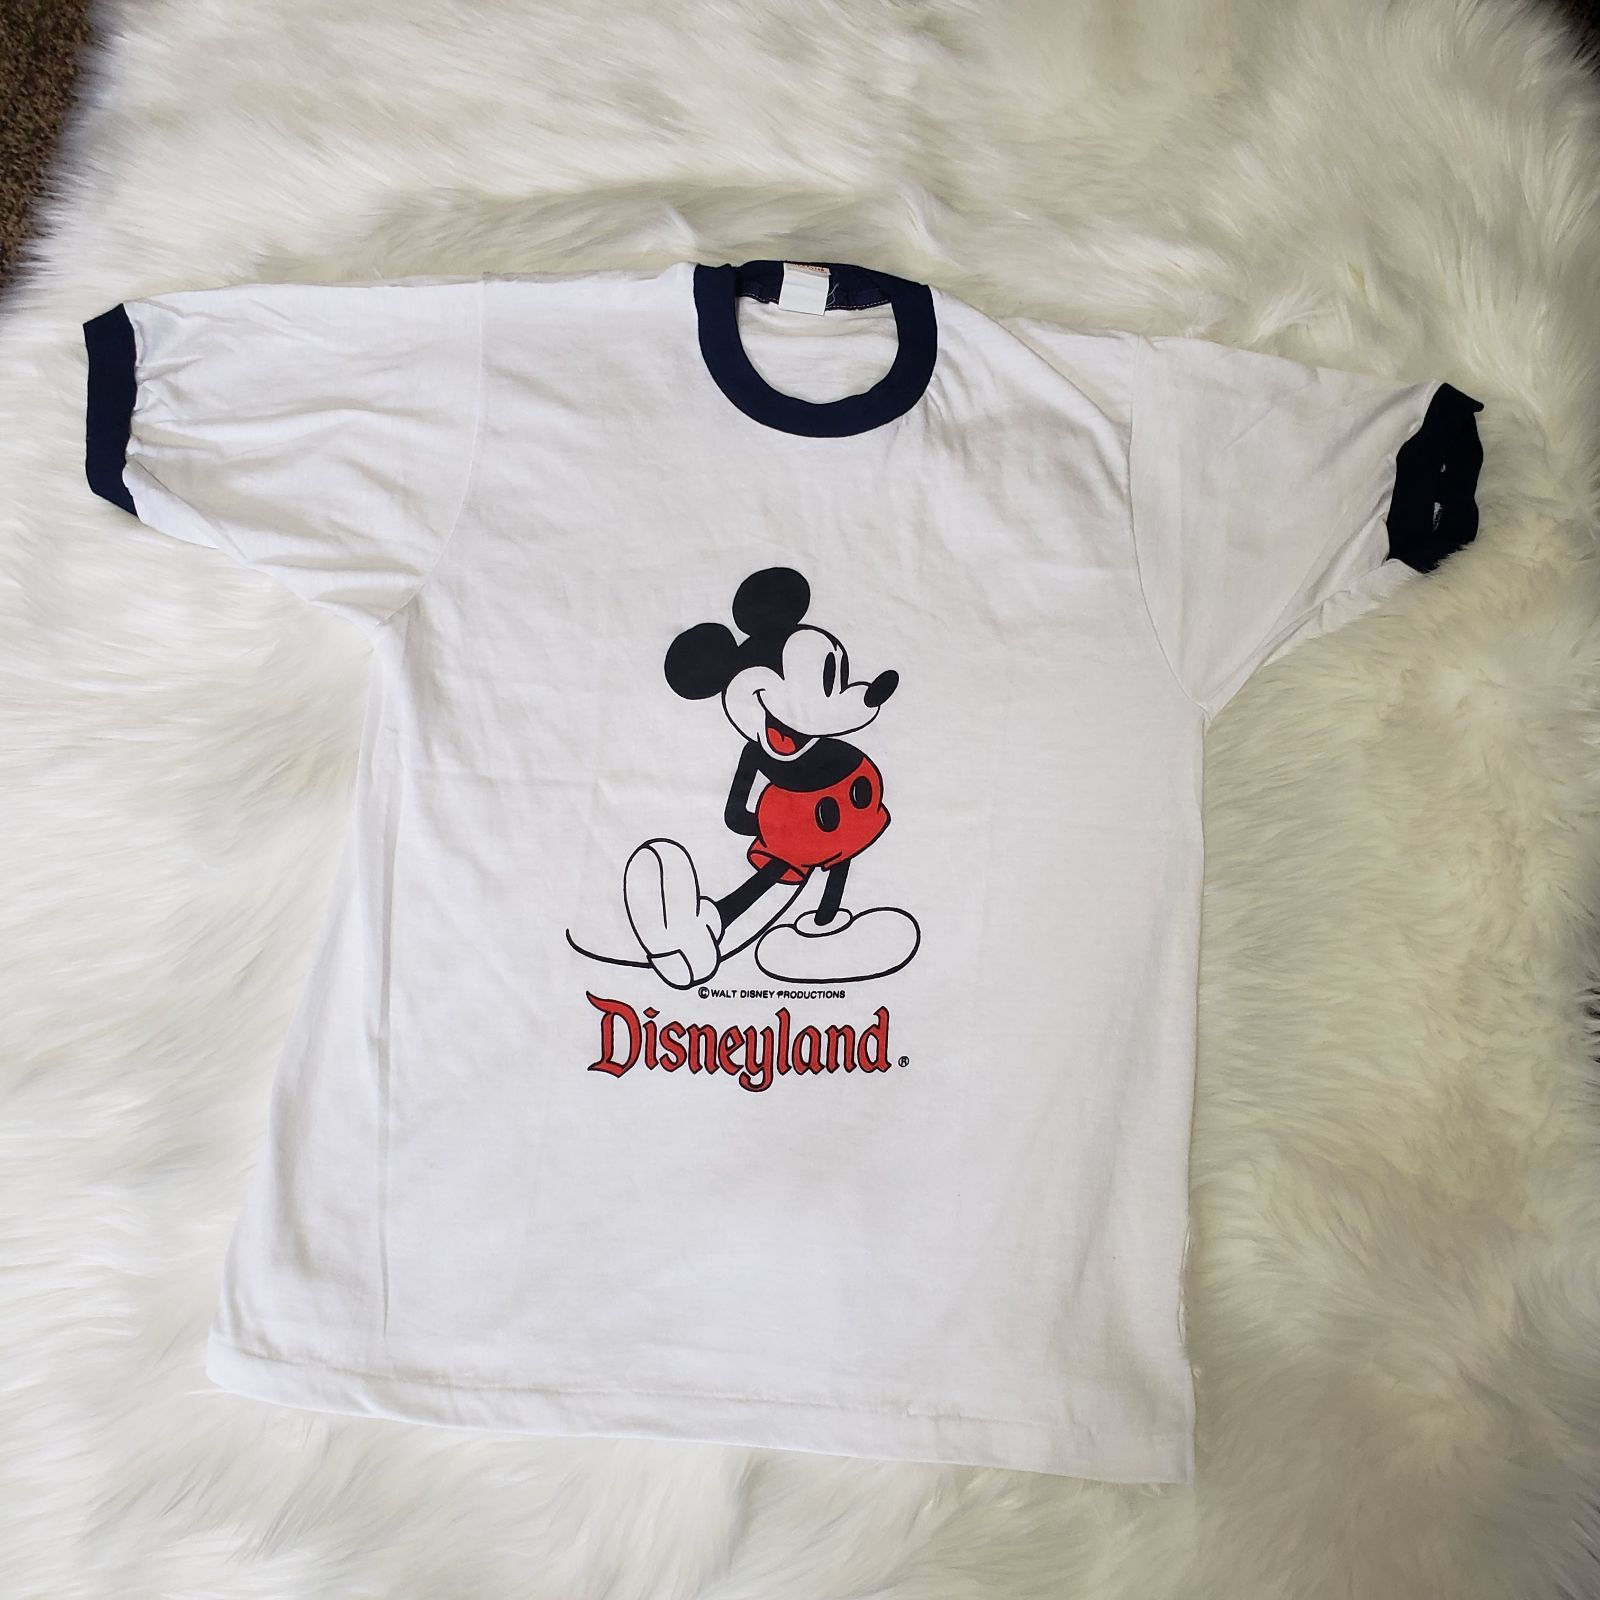 Vintage 1970 S Tropix Togs Disney Ringer Tee It Is New Without Tags 1970s Kids Clothes Disney Tee Shirts Disney Tees